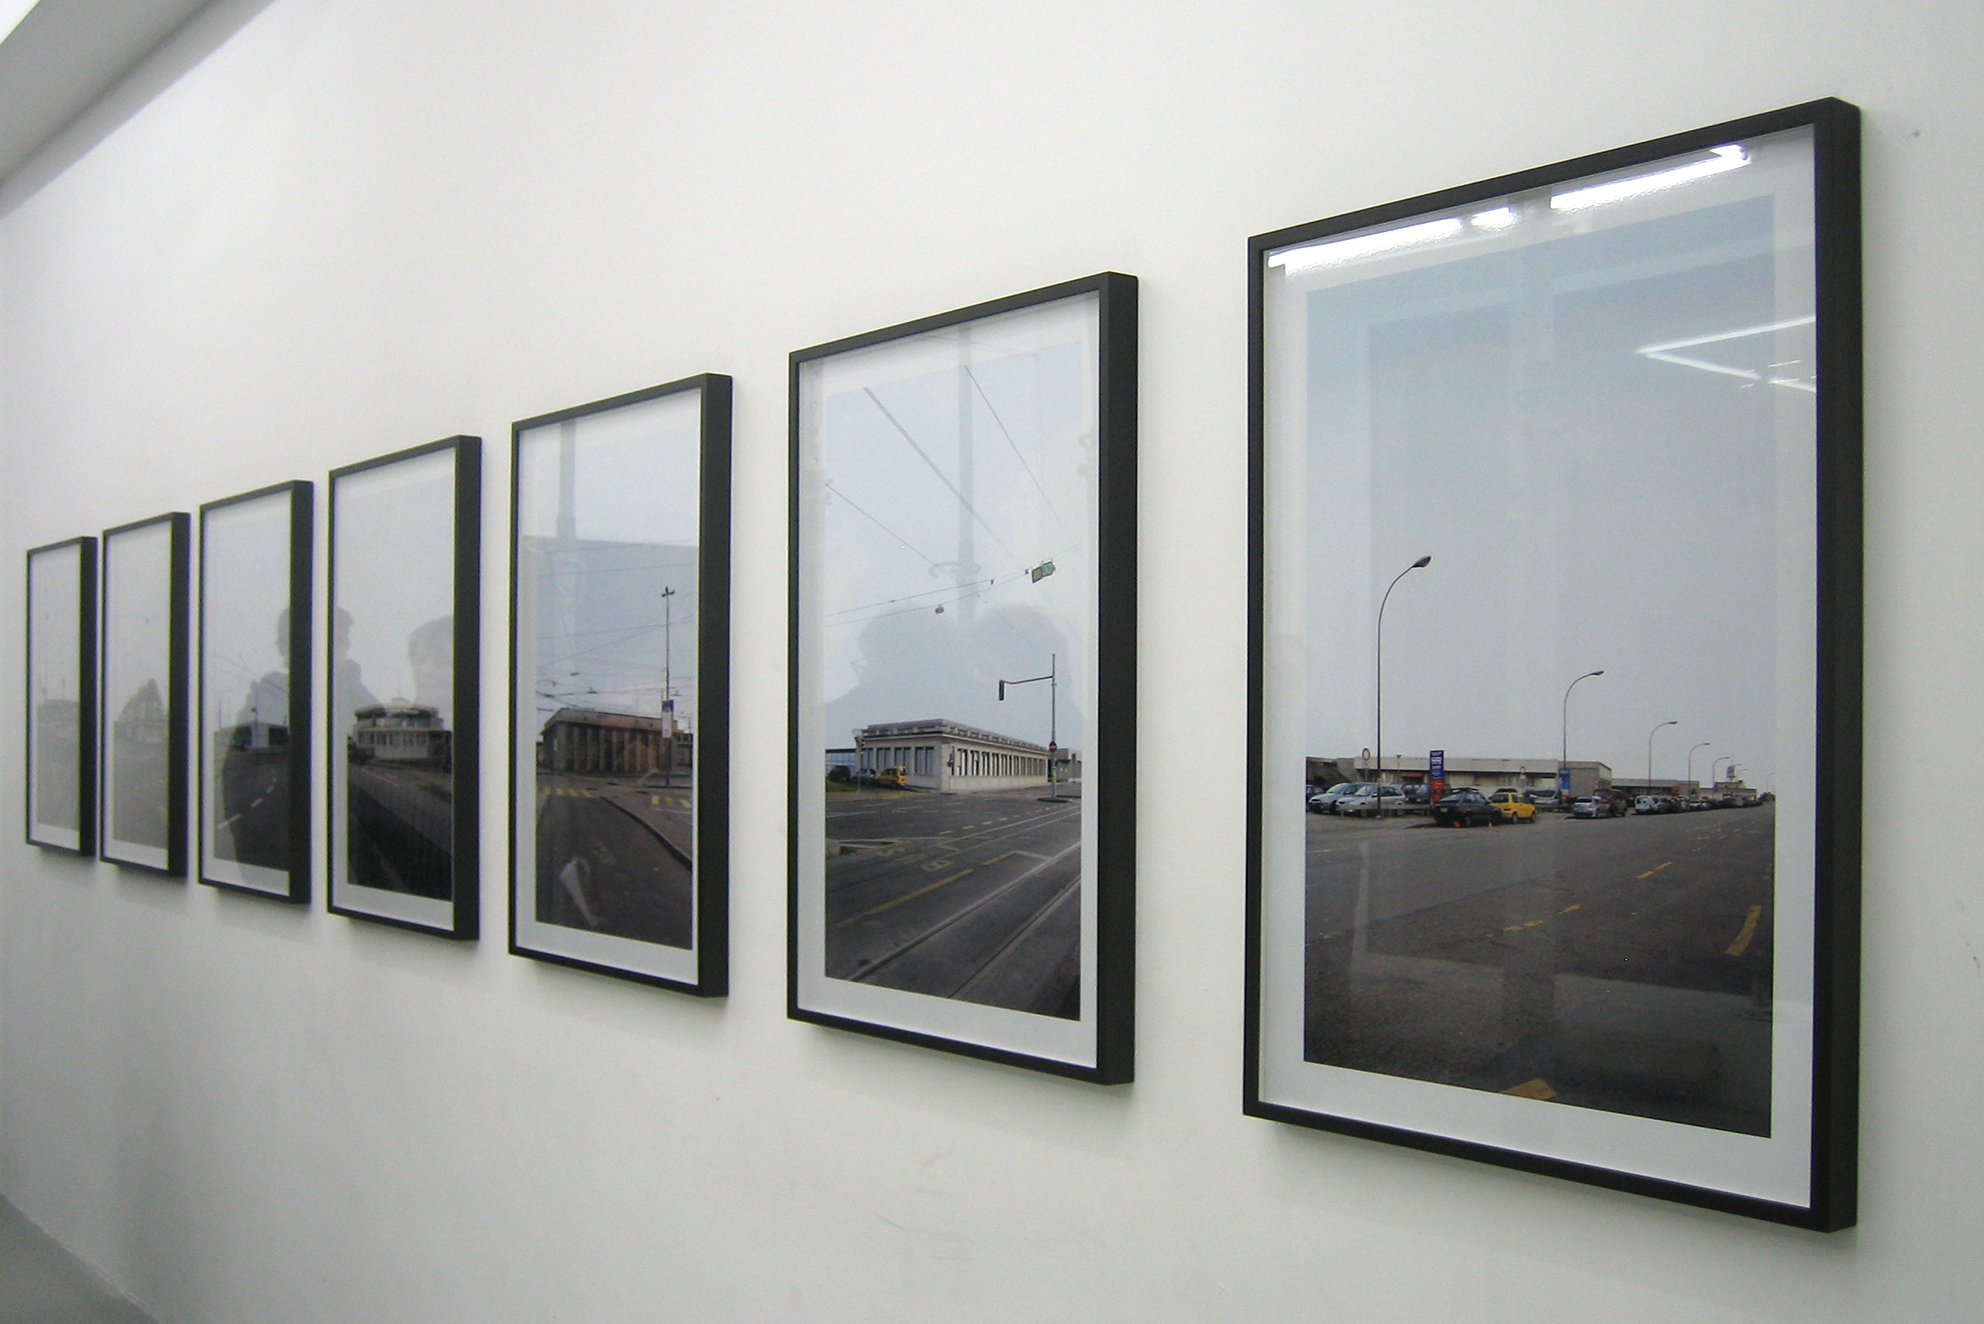 DOWNtown, series of 7 photographs, lambda print / black wooden frame and glass, 84 x 60 x 3 cm, 2008, in collaboration with Swann Thommen